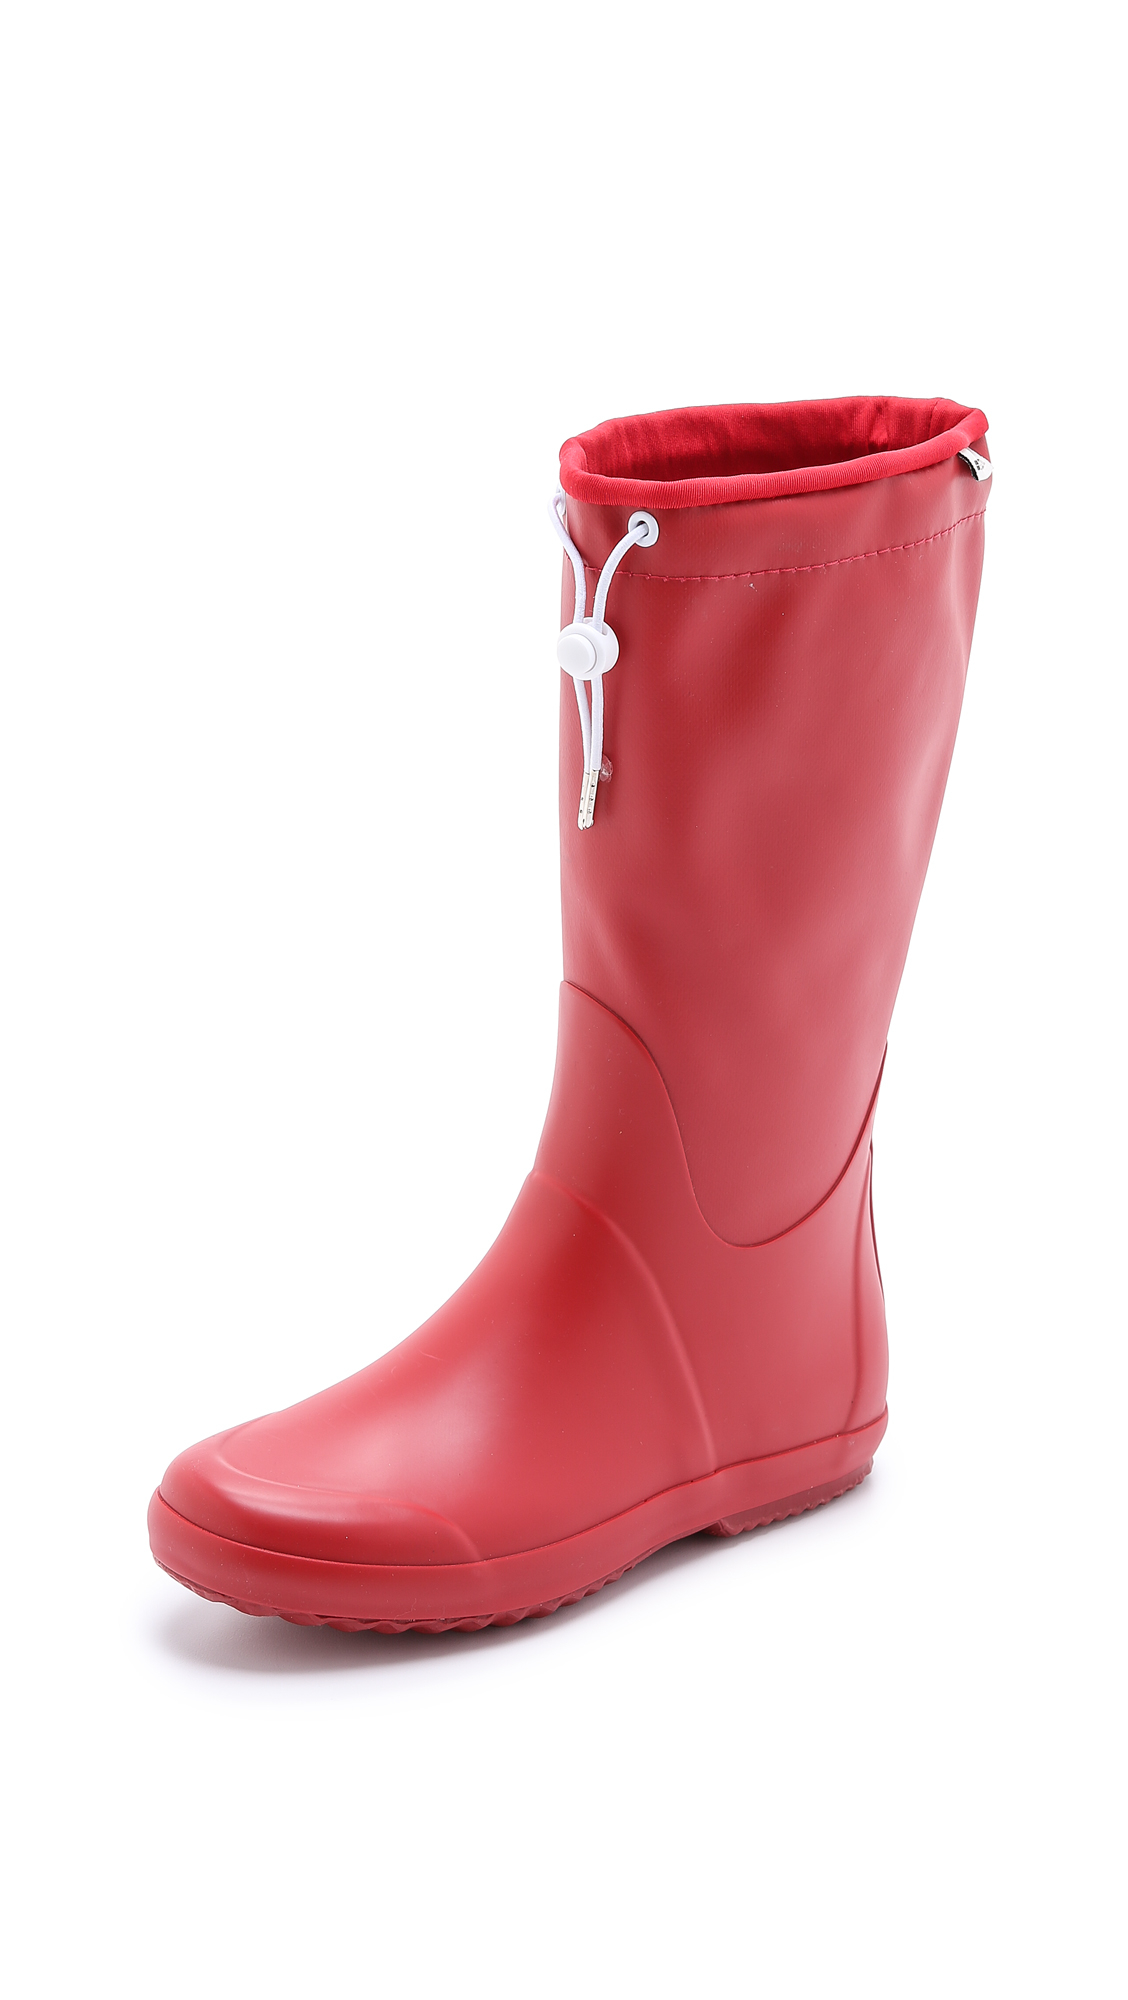 Tretorn Viken Toggle Rubber Boots - Red